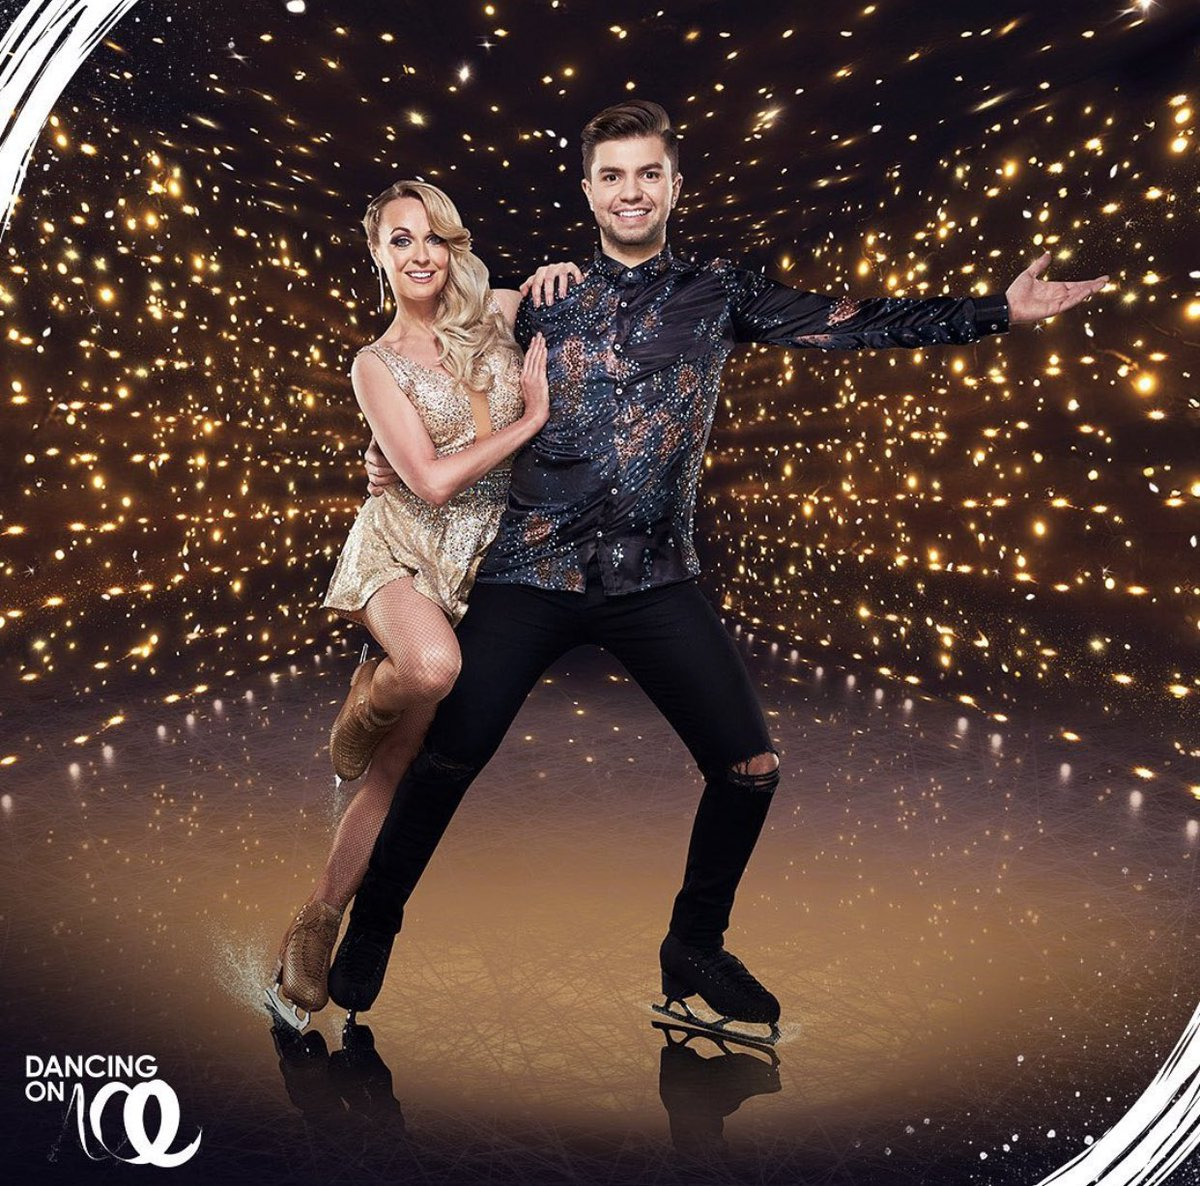 Replying to @Sianwelby: Omggggg tonight's the night!!!! Good luck @SonnyJay 🙌🏼🙌🏼🙌🏼🕺🏽 #TeamSonny ❄️❄️❄️ @dancingonice